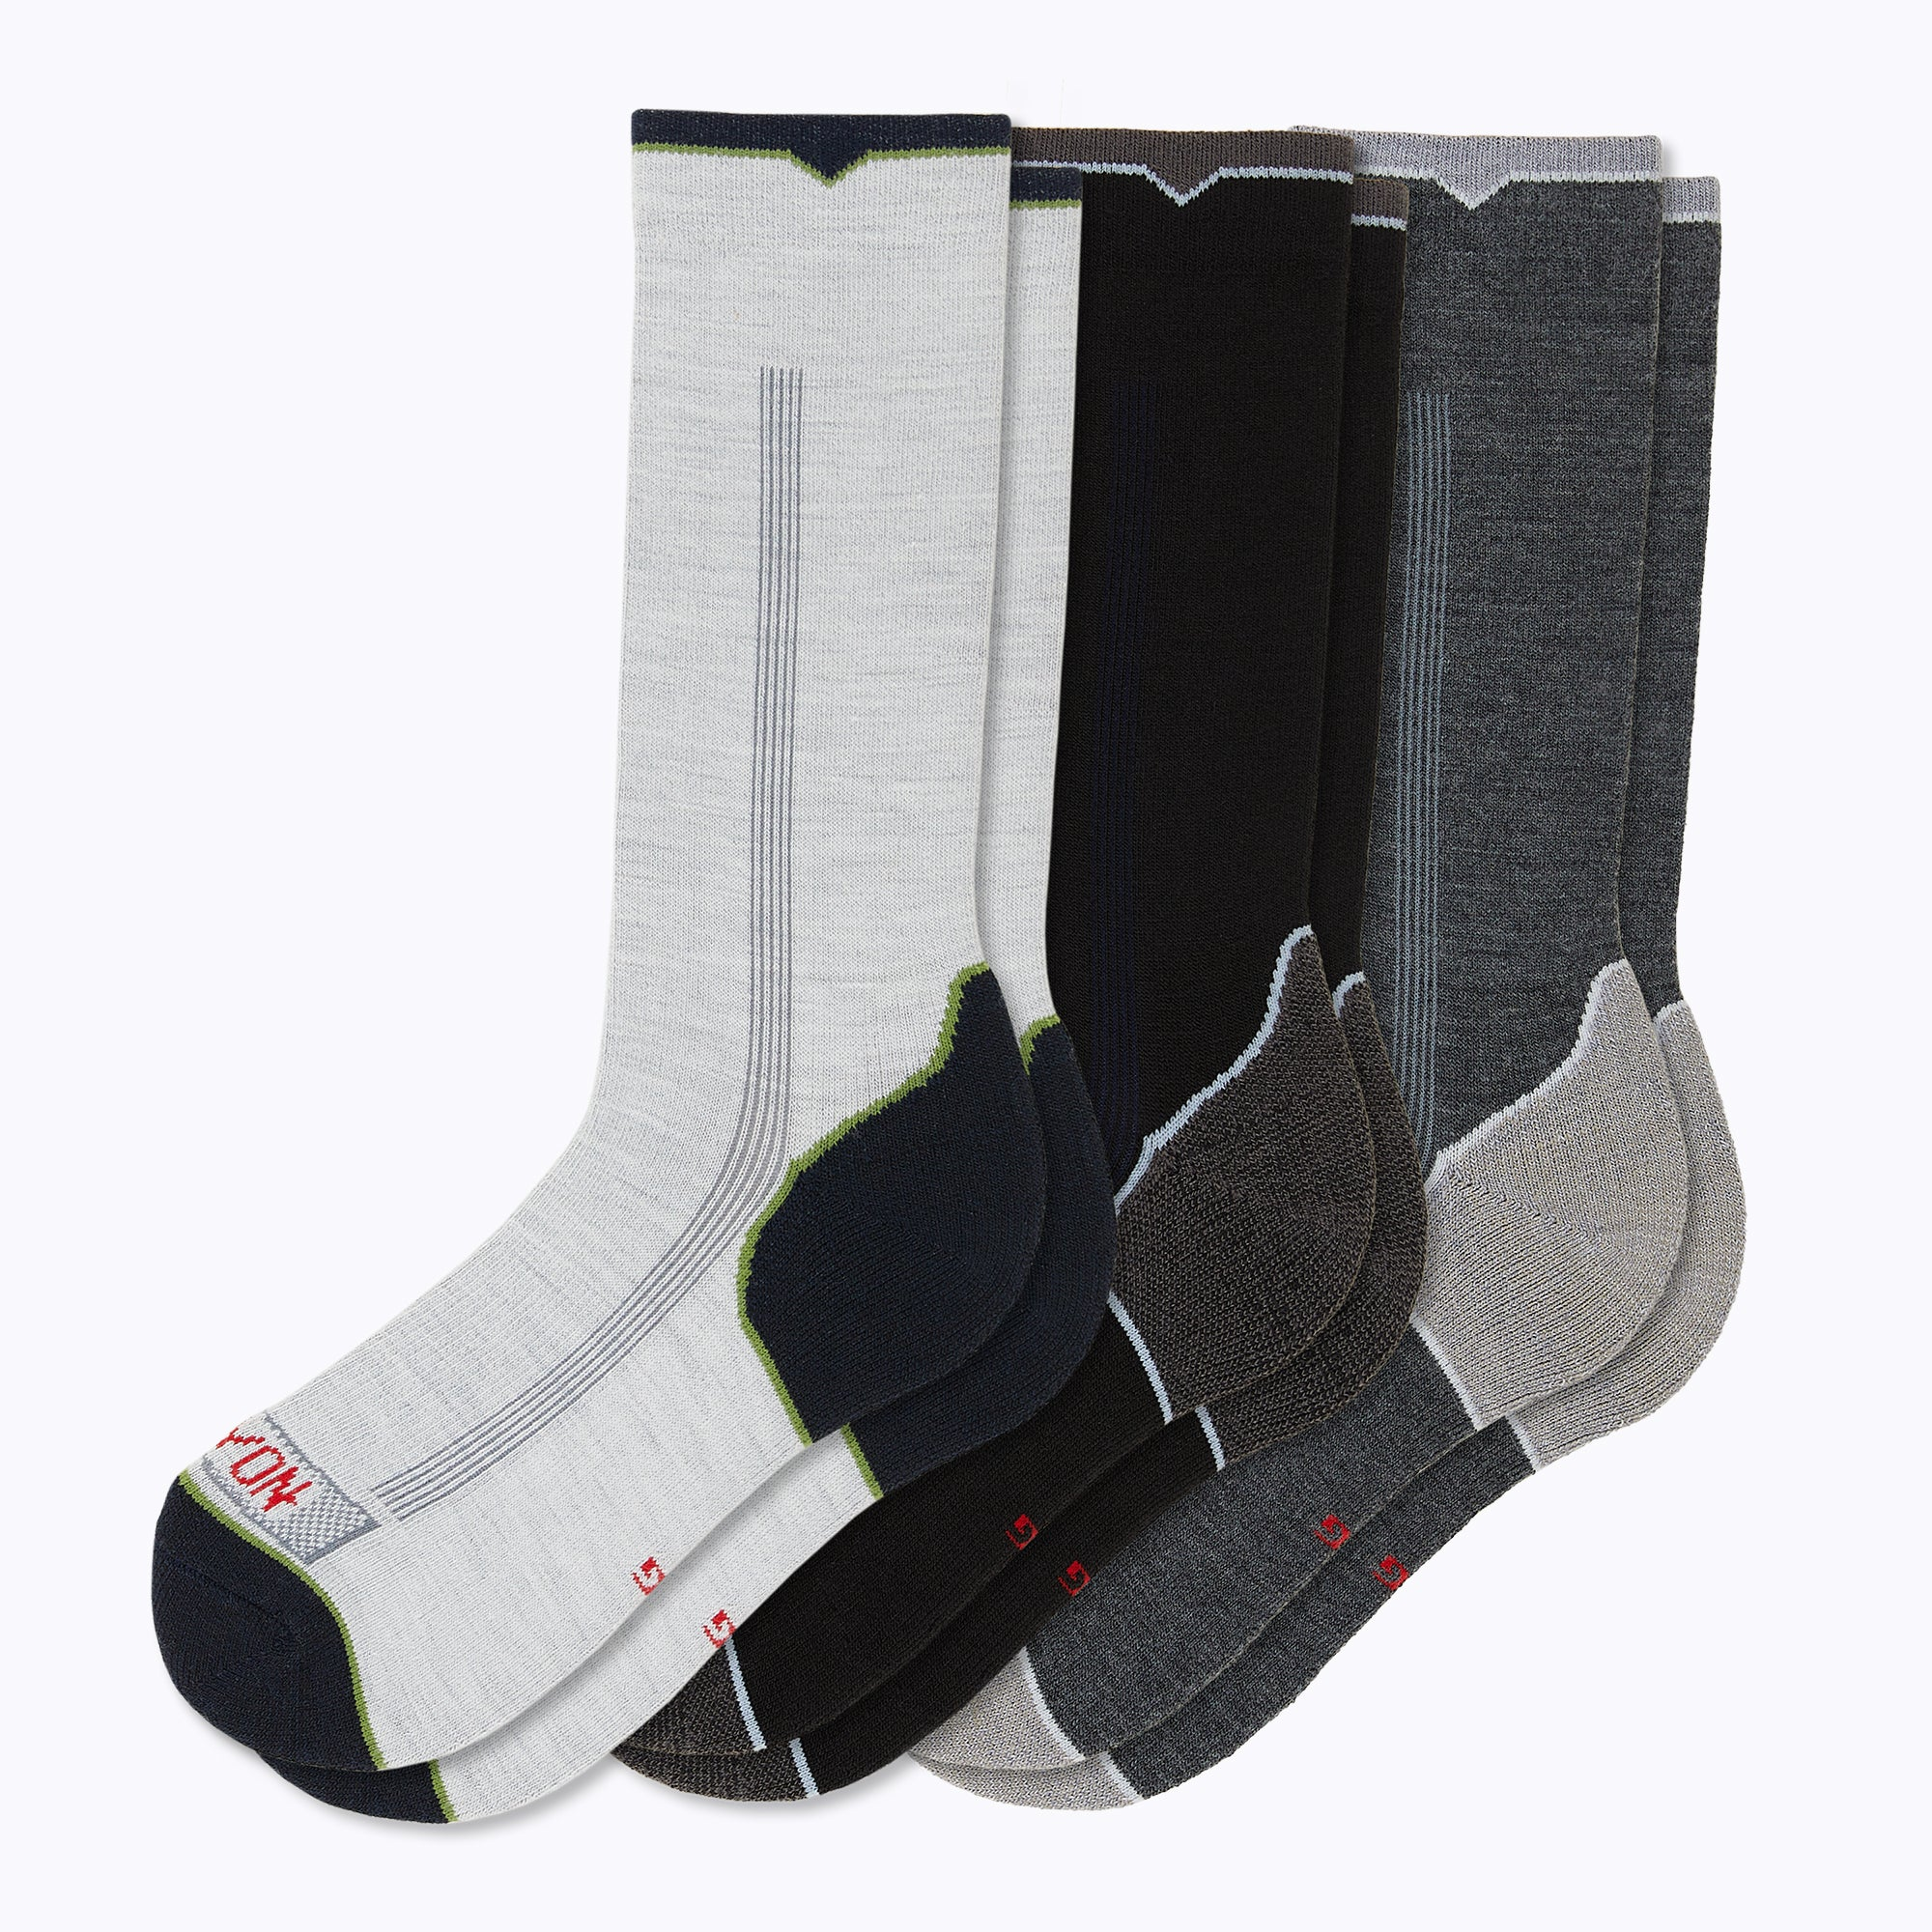 Destination 3 Pack Mix Men's Crew Socks - Mix by Canyon Socks